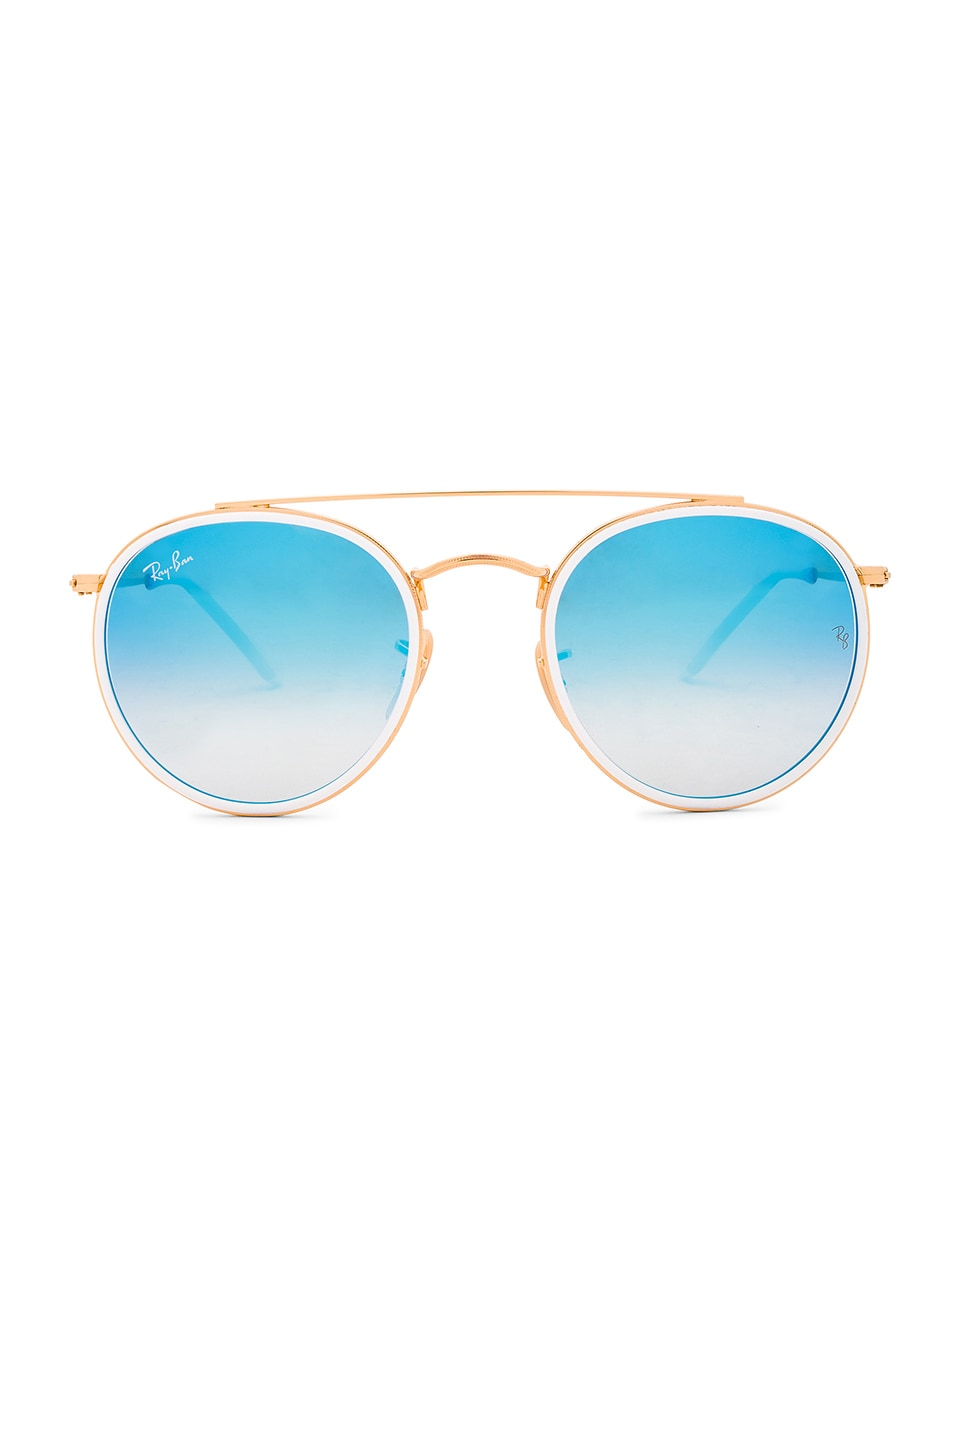 Ray-Ban Round Double Bridge in Gold & Blue Gradient Flash